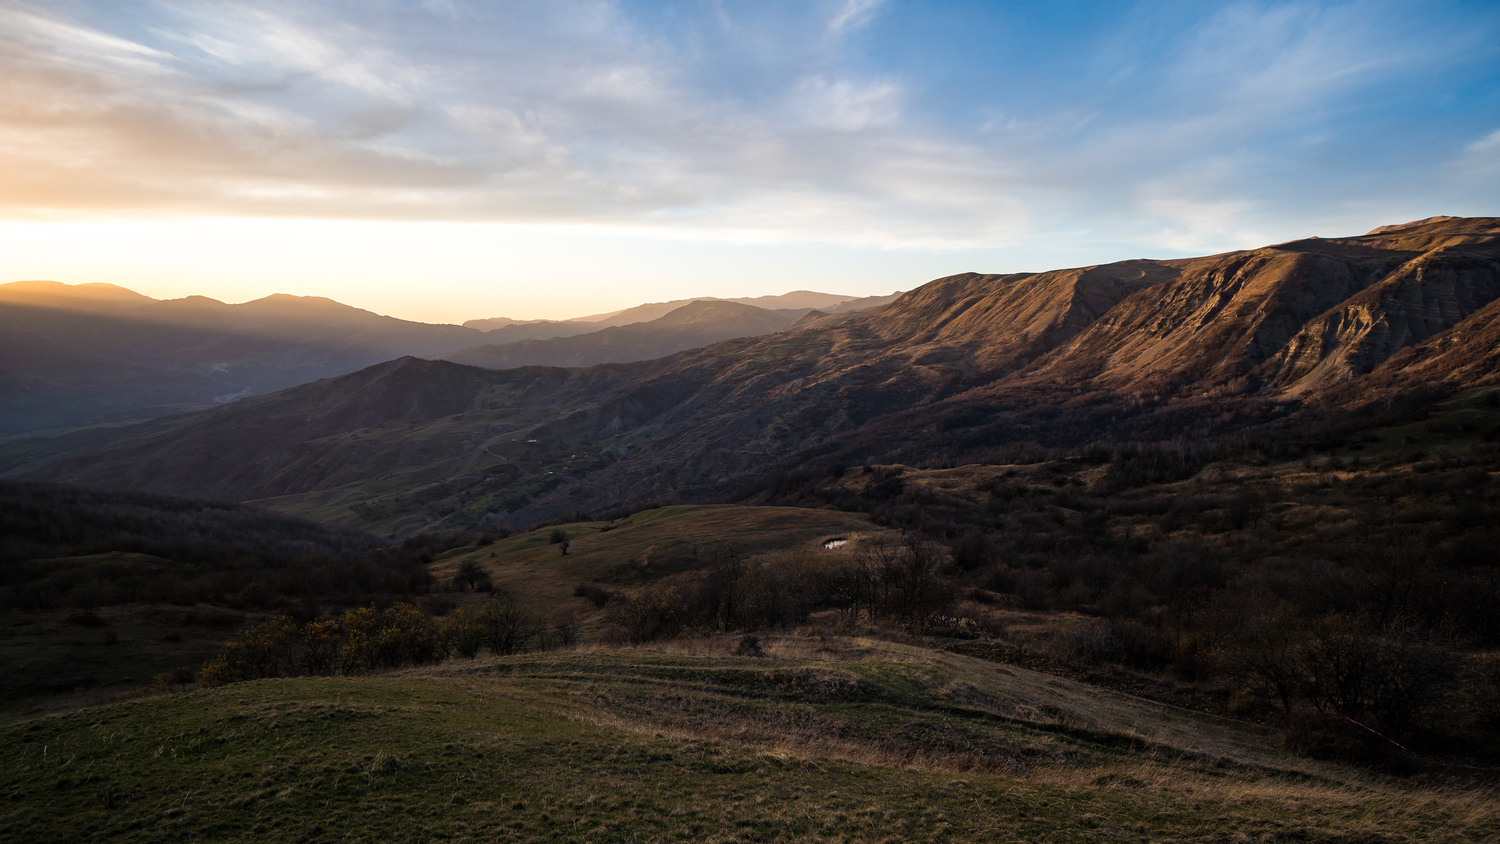 Greater Caucasus Mountains by Bret Little